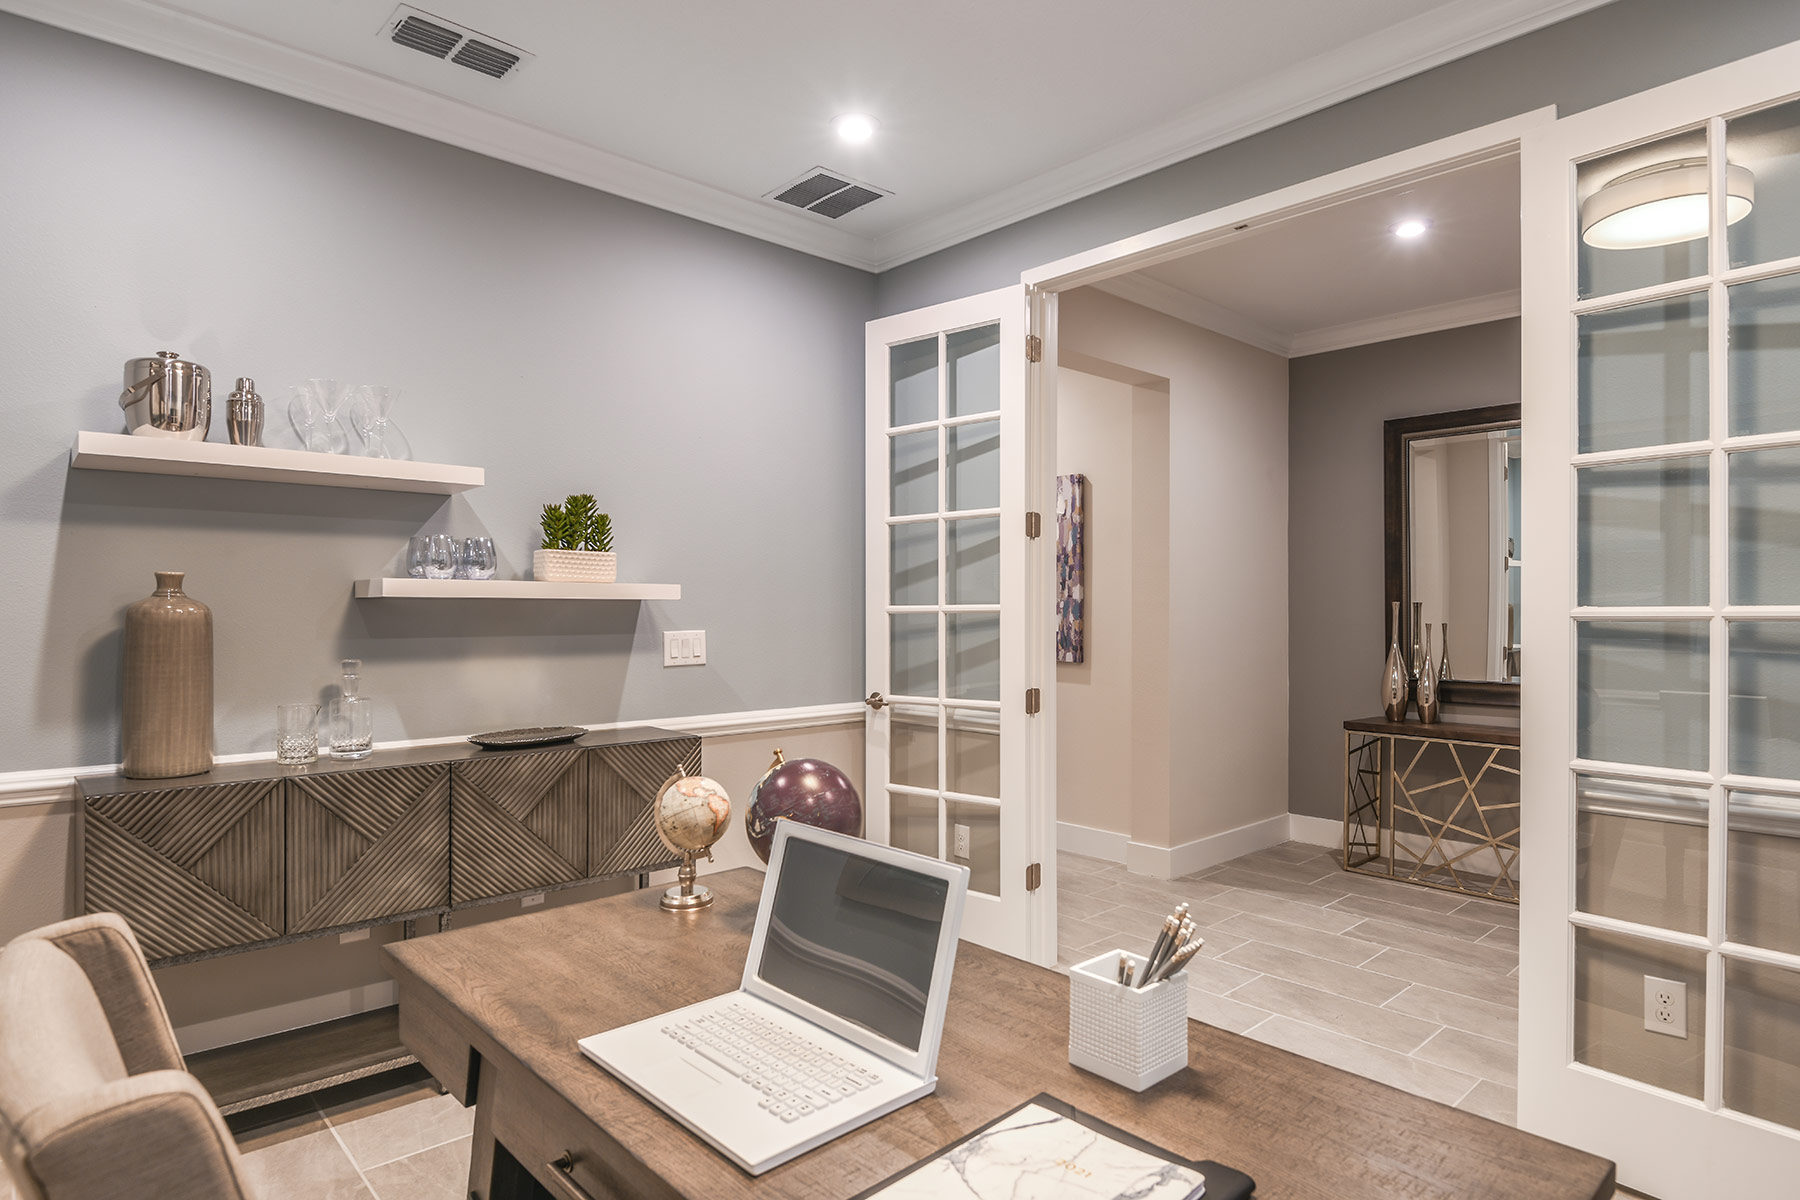 Dominica II Plan Study Room at Wellen Park - Renaissance in Venice Florida by Mattamy Homes